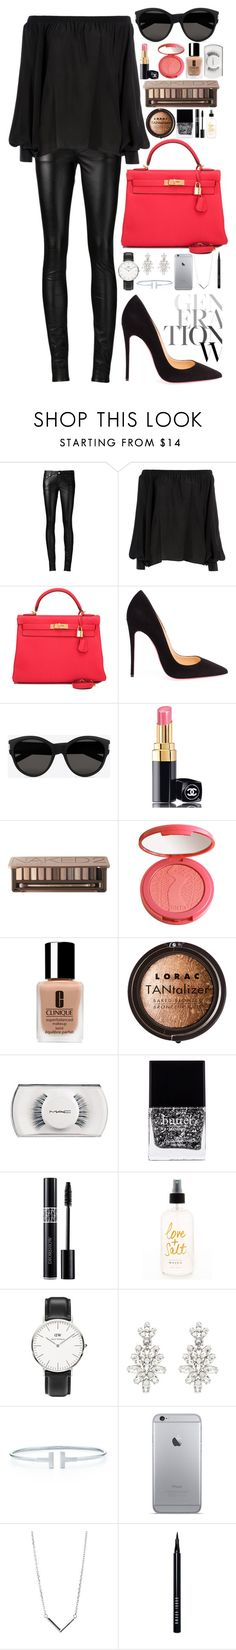 """""""Out"""" by julia-wst ❤ liked on Polyvore featuring Yves Saint Laurent, Balmain, Hermès, Christian Louboutin, Chanel, Urban Decay, tarte, Clinique, LORAC and MAC Cosmetics"""